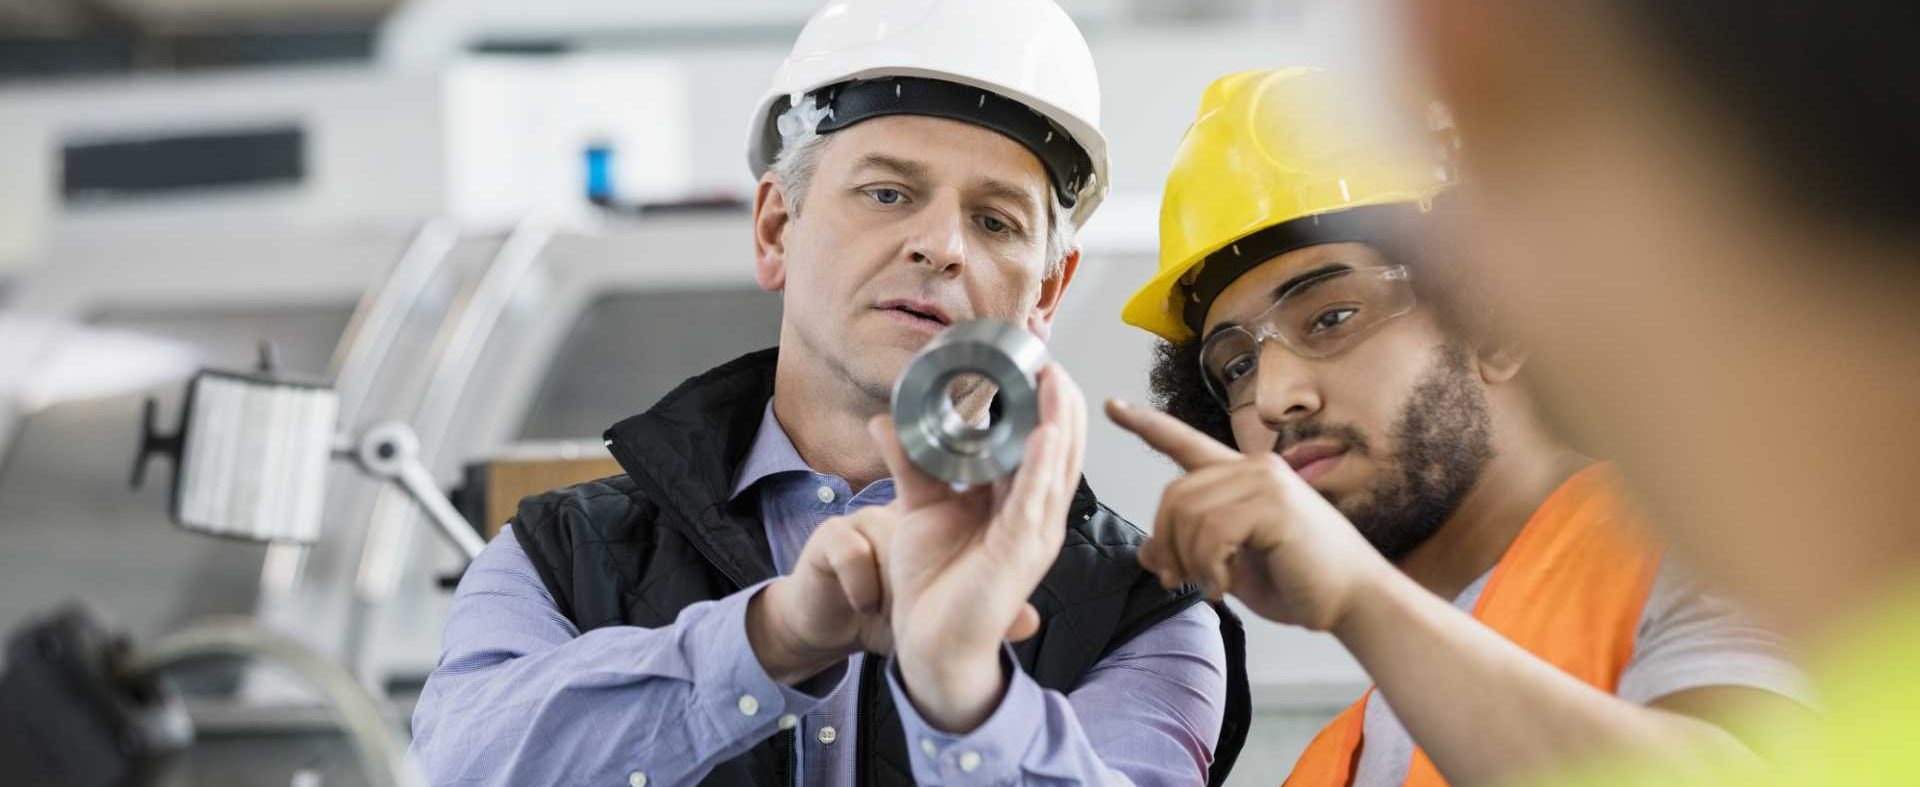 Supervisor and manual worker discussing in industry manufacturing engineering product quality - image courtesy of Depositphotos.